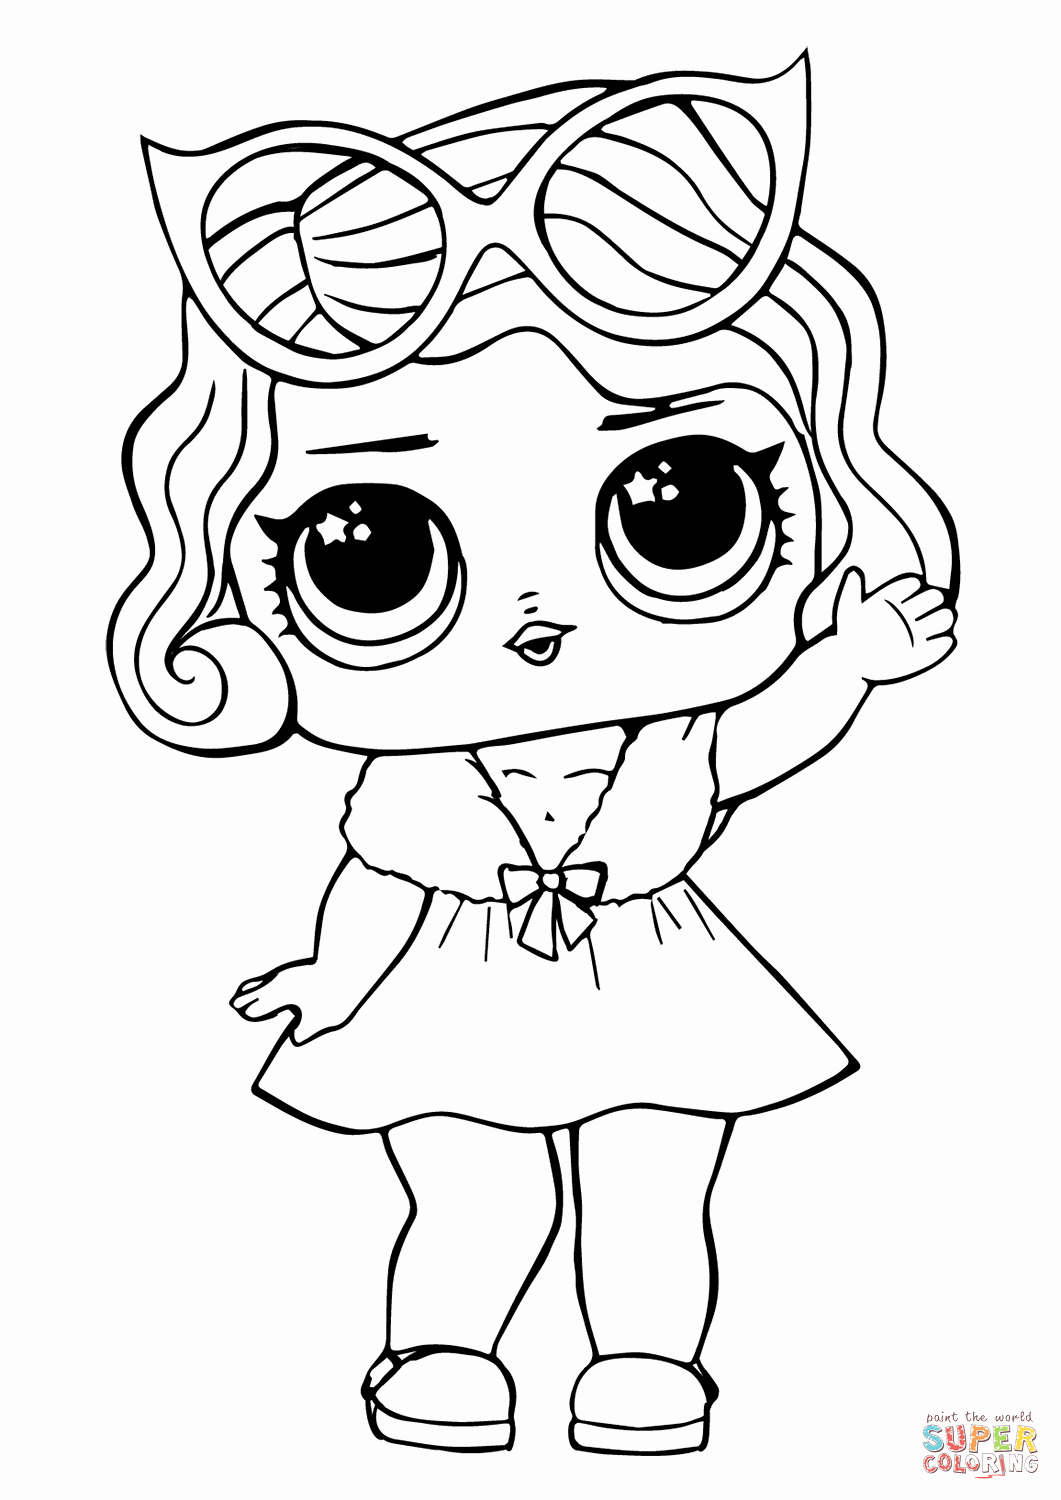 Bathroom Crayola Coloring Pages Freeable Sheets For Kids Com Sheet Photo Ideasable Free Color By Numberables Gemap Coloring Home